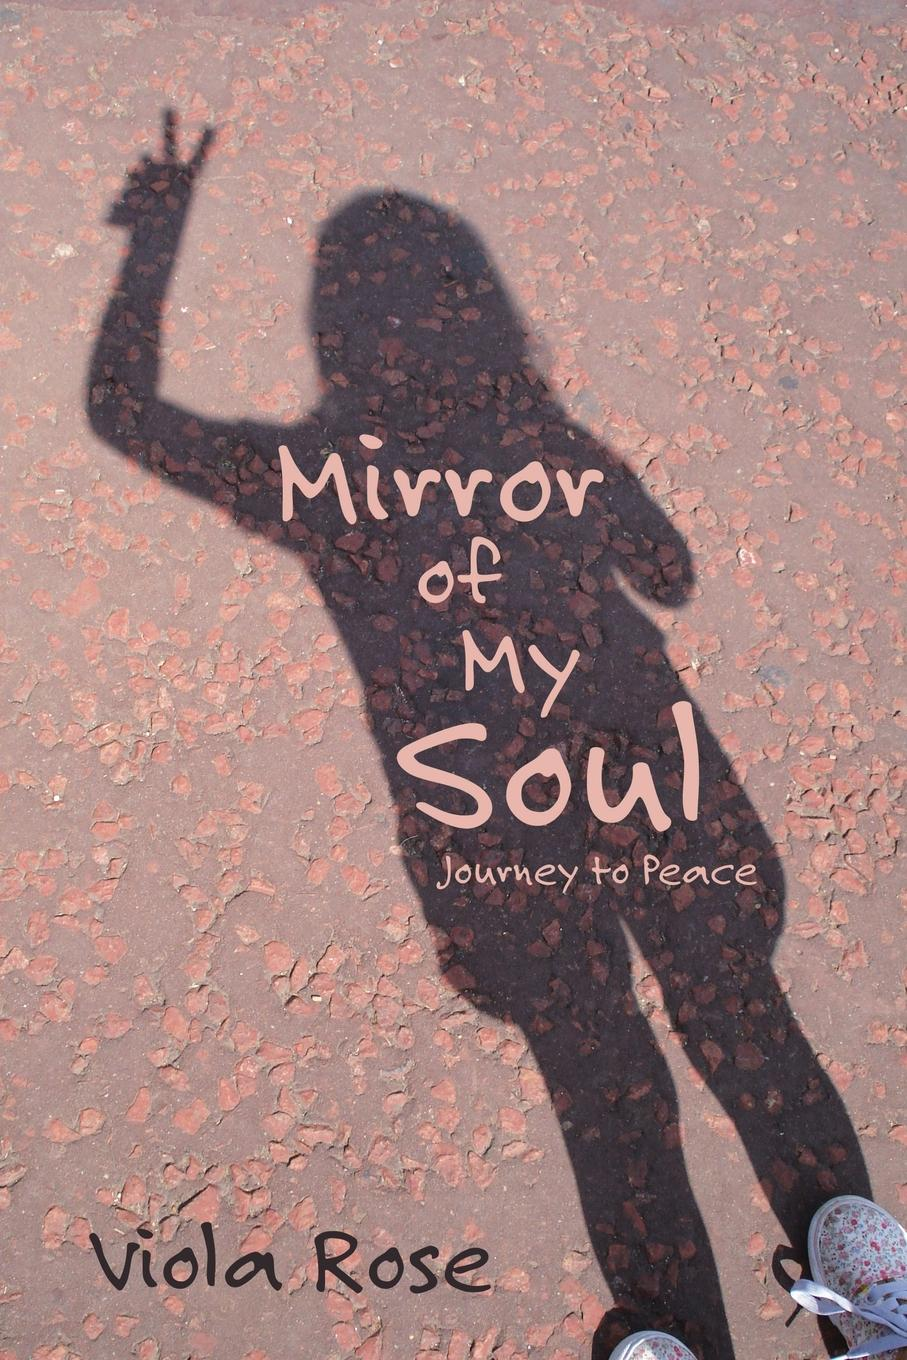 Viola Rose Mirror of My Soul. Journey to Peace janine allis the secrets of my success the story of boost juice juicy bits and all